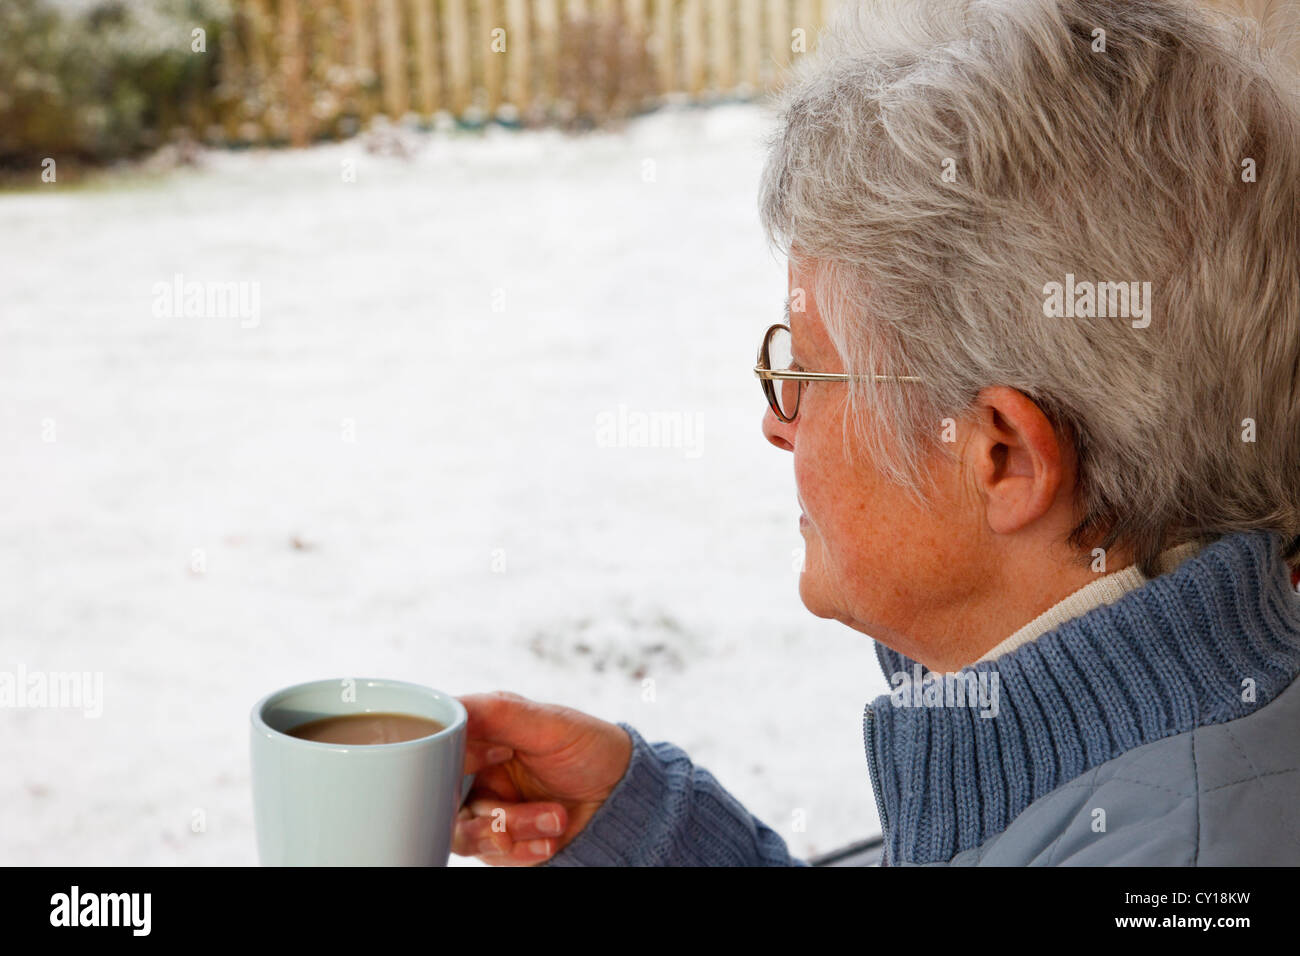 Lonely senior woman holding a hot drink and looking out through a window to snow in the garden outside in winter. - Stock Image